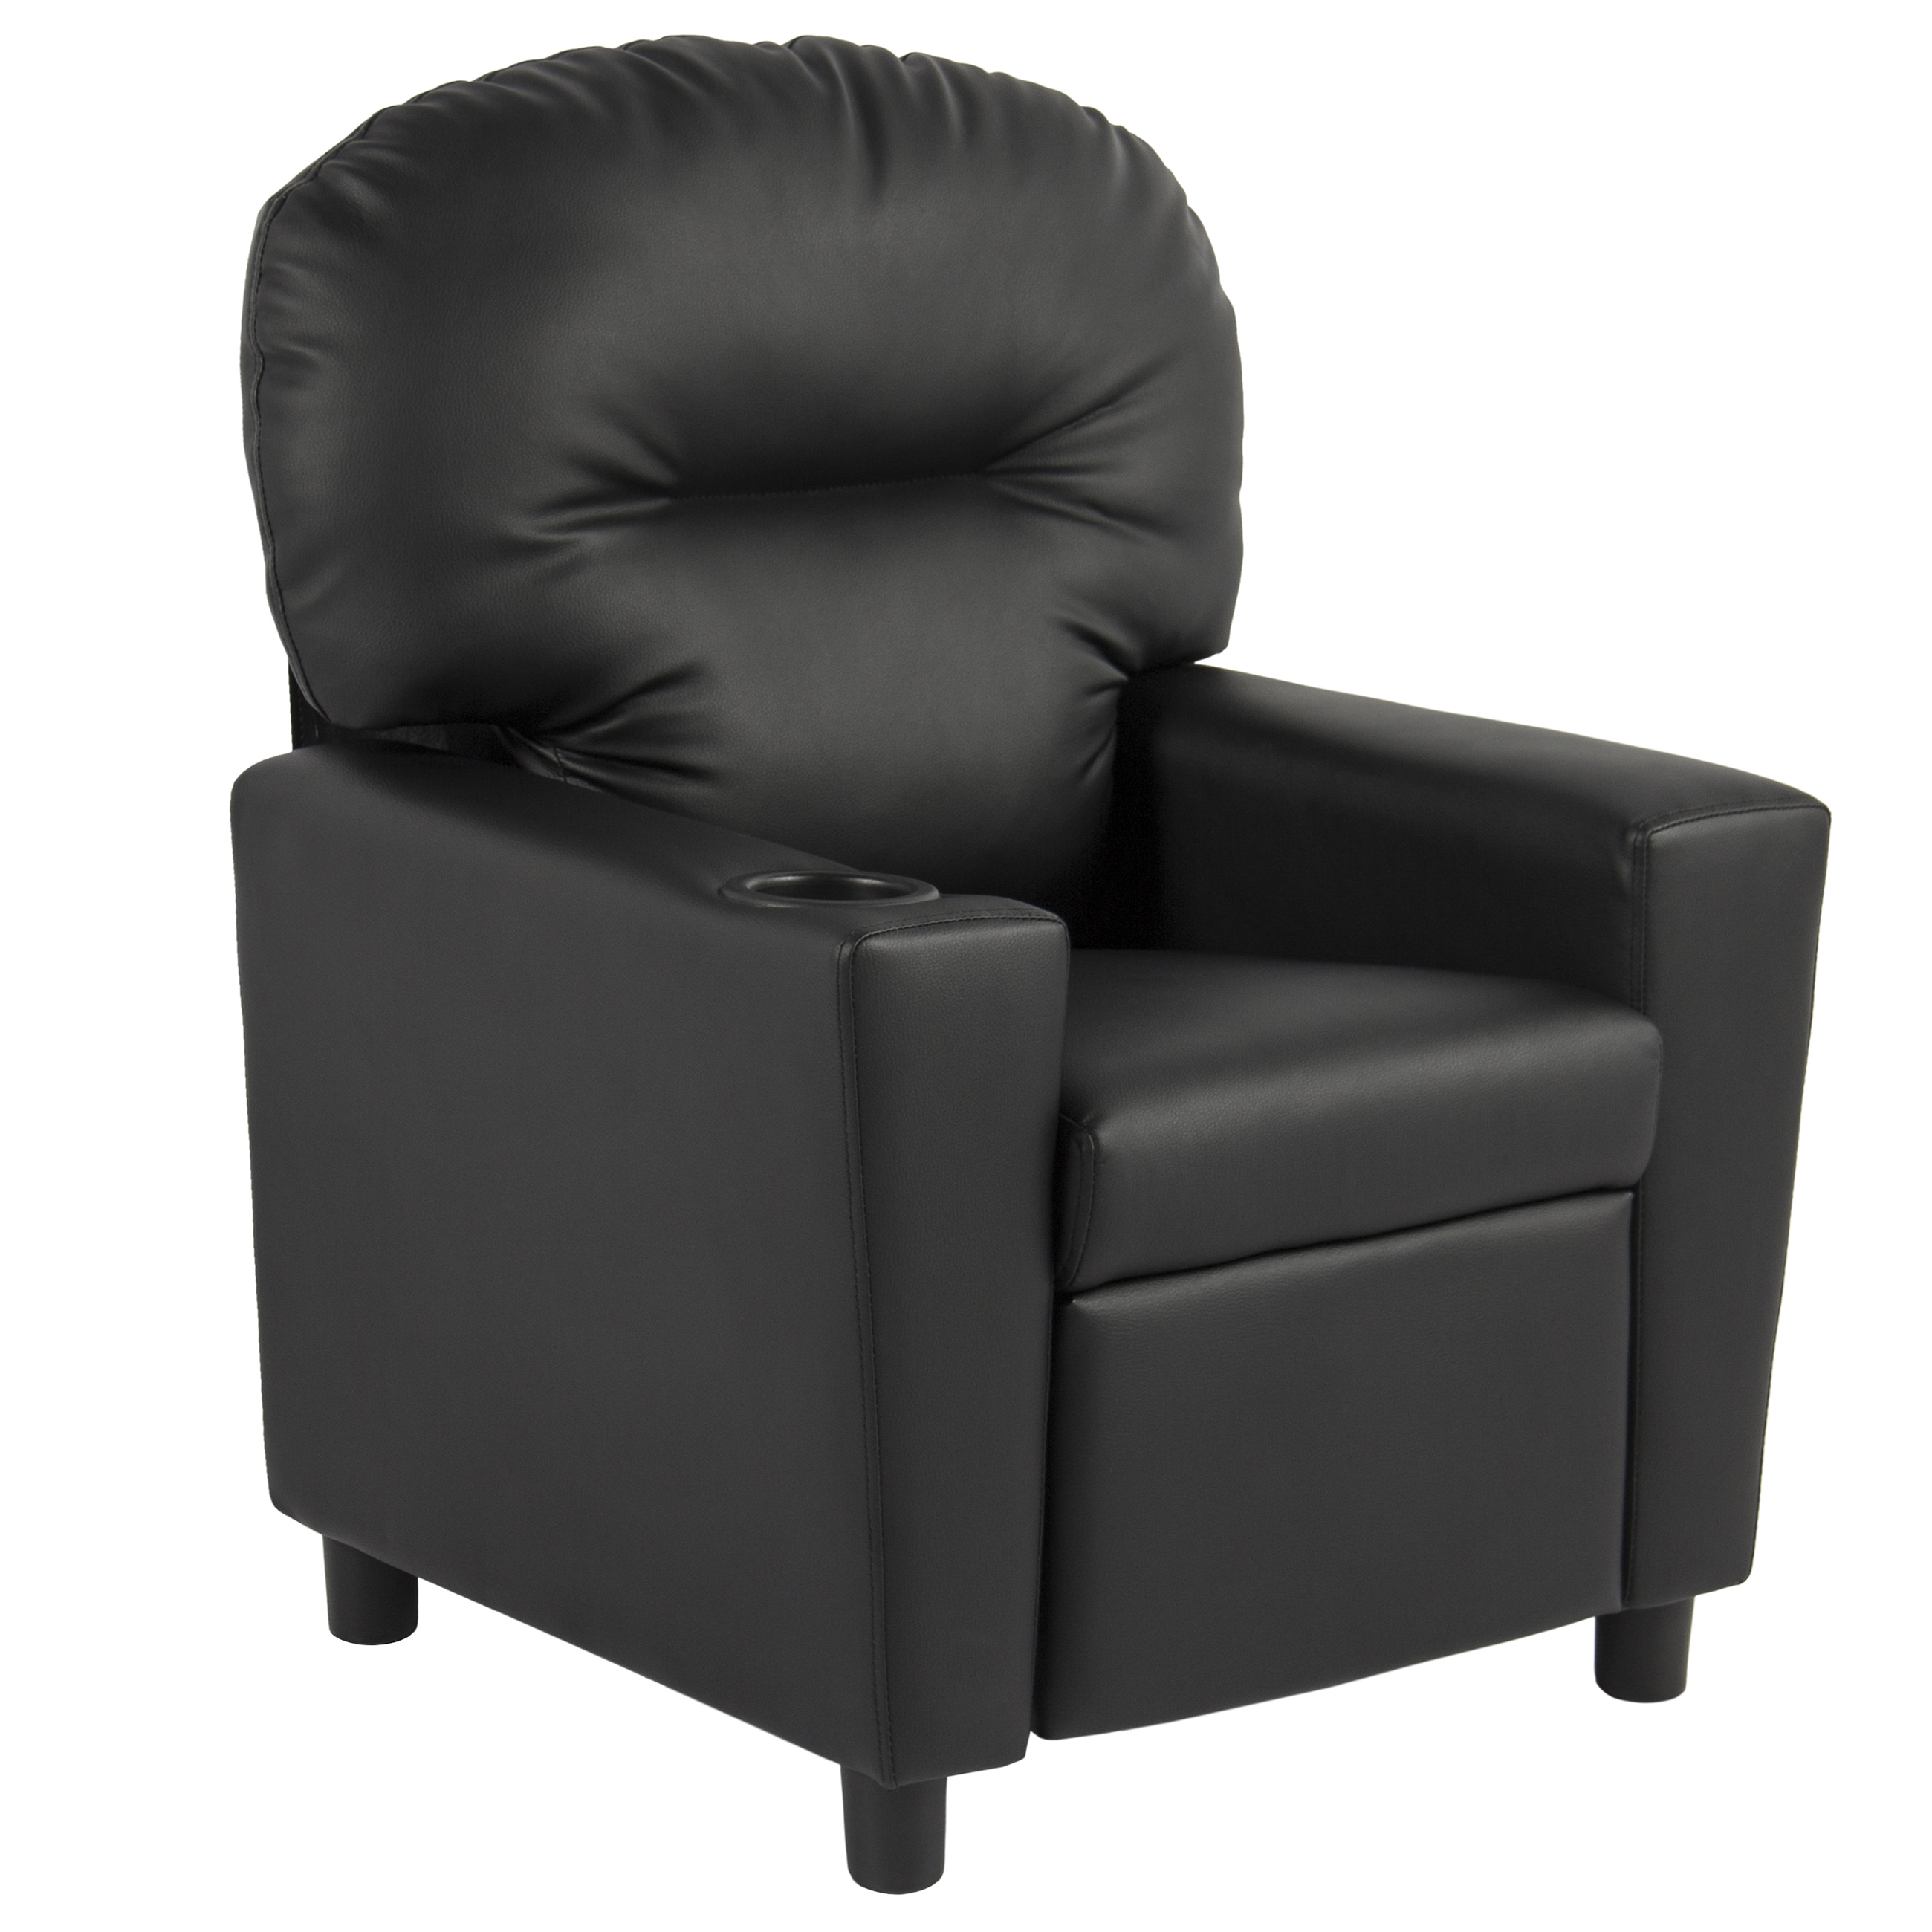 Best Choice Products Black Leather Kids Recliner Chair with Cup Holder - Walmart.com  sc 1 st  Walmart & Best Choice Products Black Leather Kids Recliner Chair with Cup ... islam-shia.org